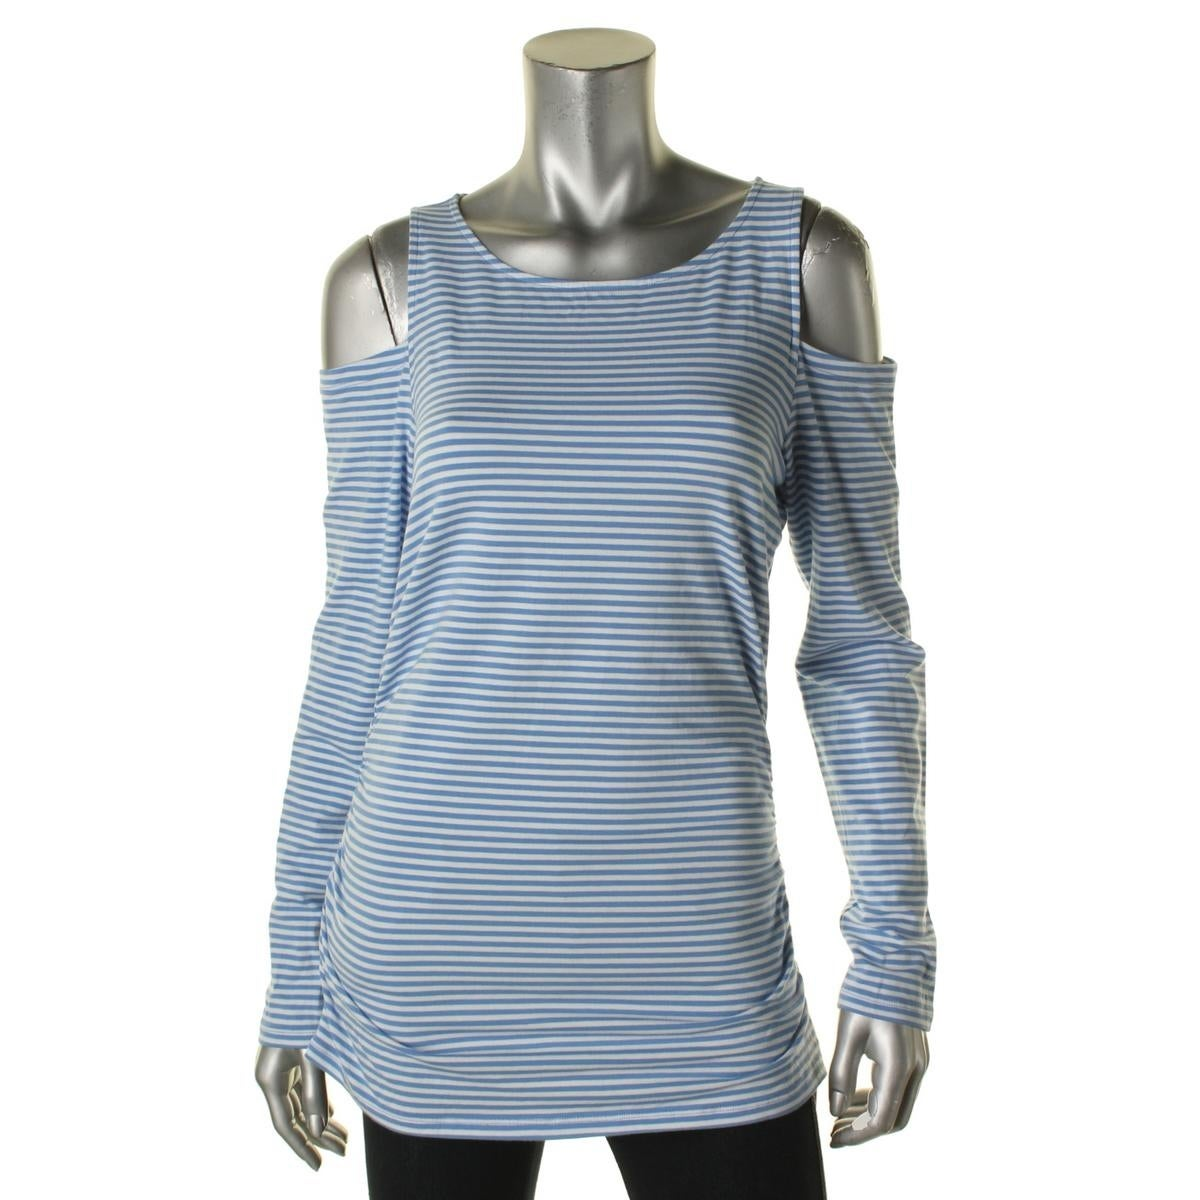 33851a7dd19c9 Shop MICHAEL Michael Kors Womens Pullover Top Striped Open Shoulder - Free  Shipping On Orders Over  45 - Overstock - 14282891